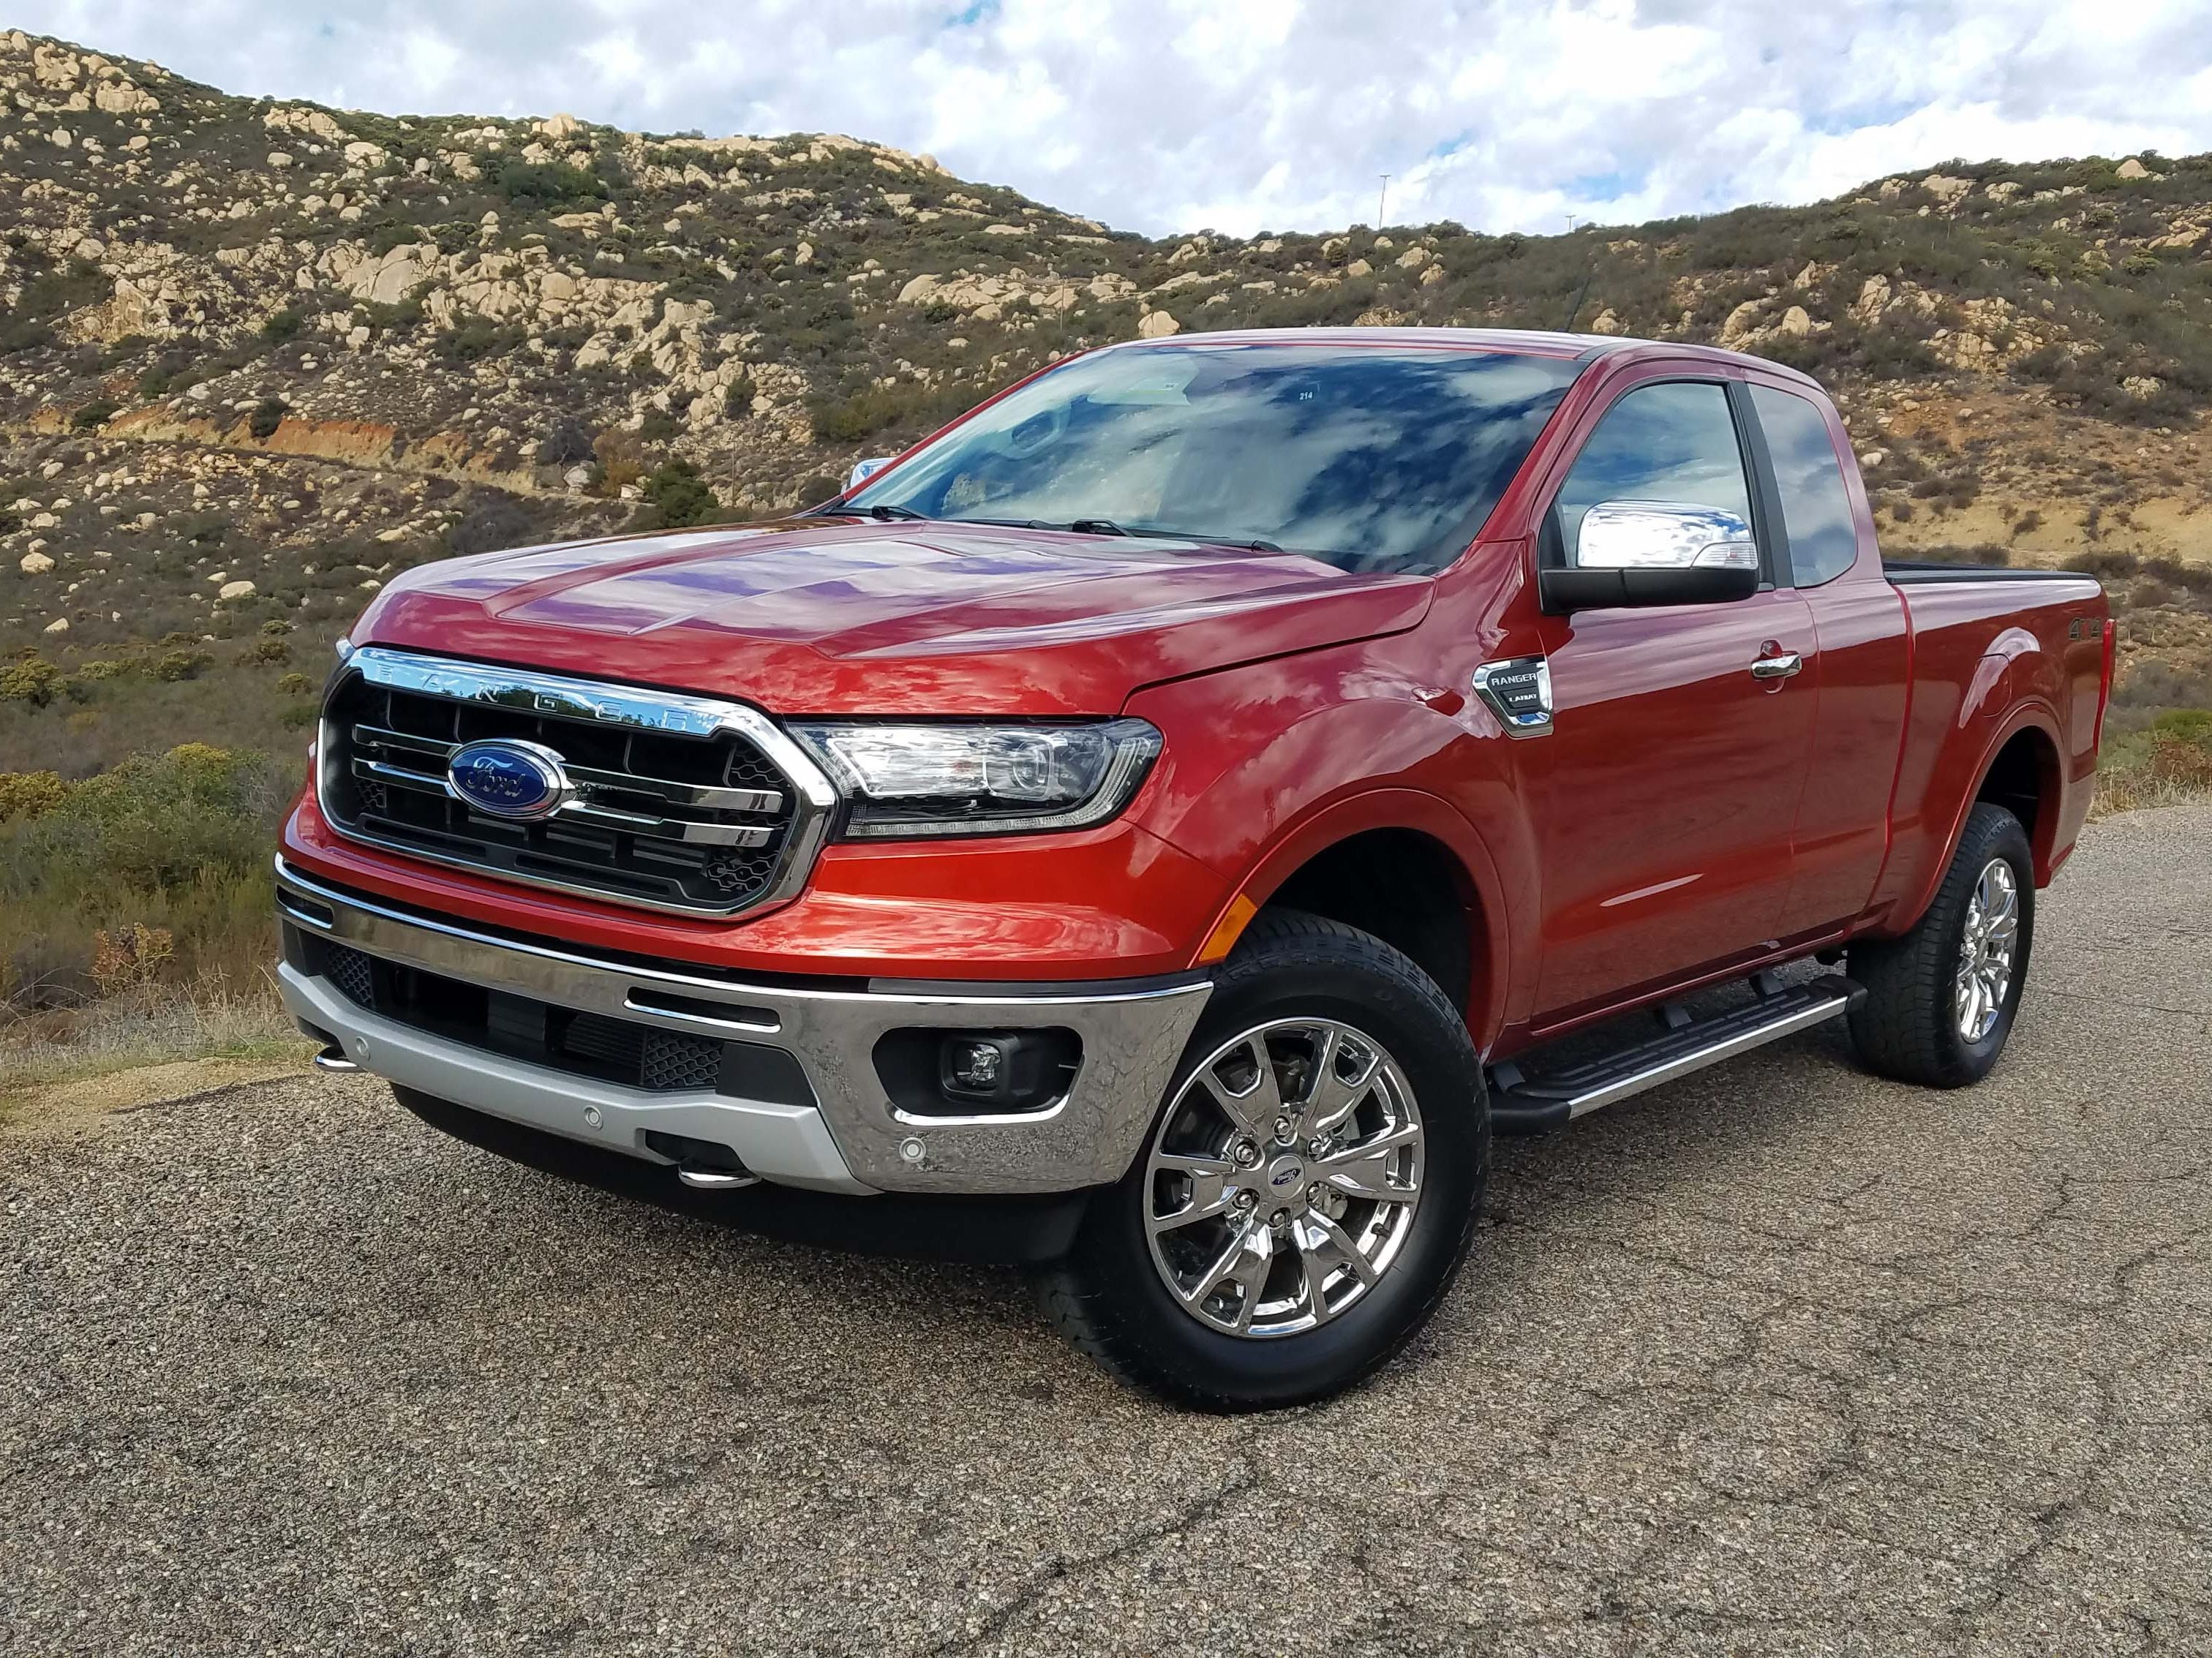 Second runner-up for The Detroit News Vehicle of the Year is the 2019 Ford Ranger. The Lariat SuperCab shown here comes with a 6-foot bed and a $37,305 price tag.